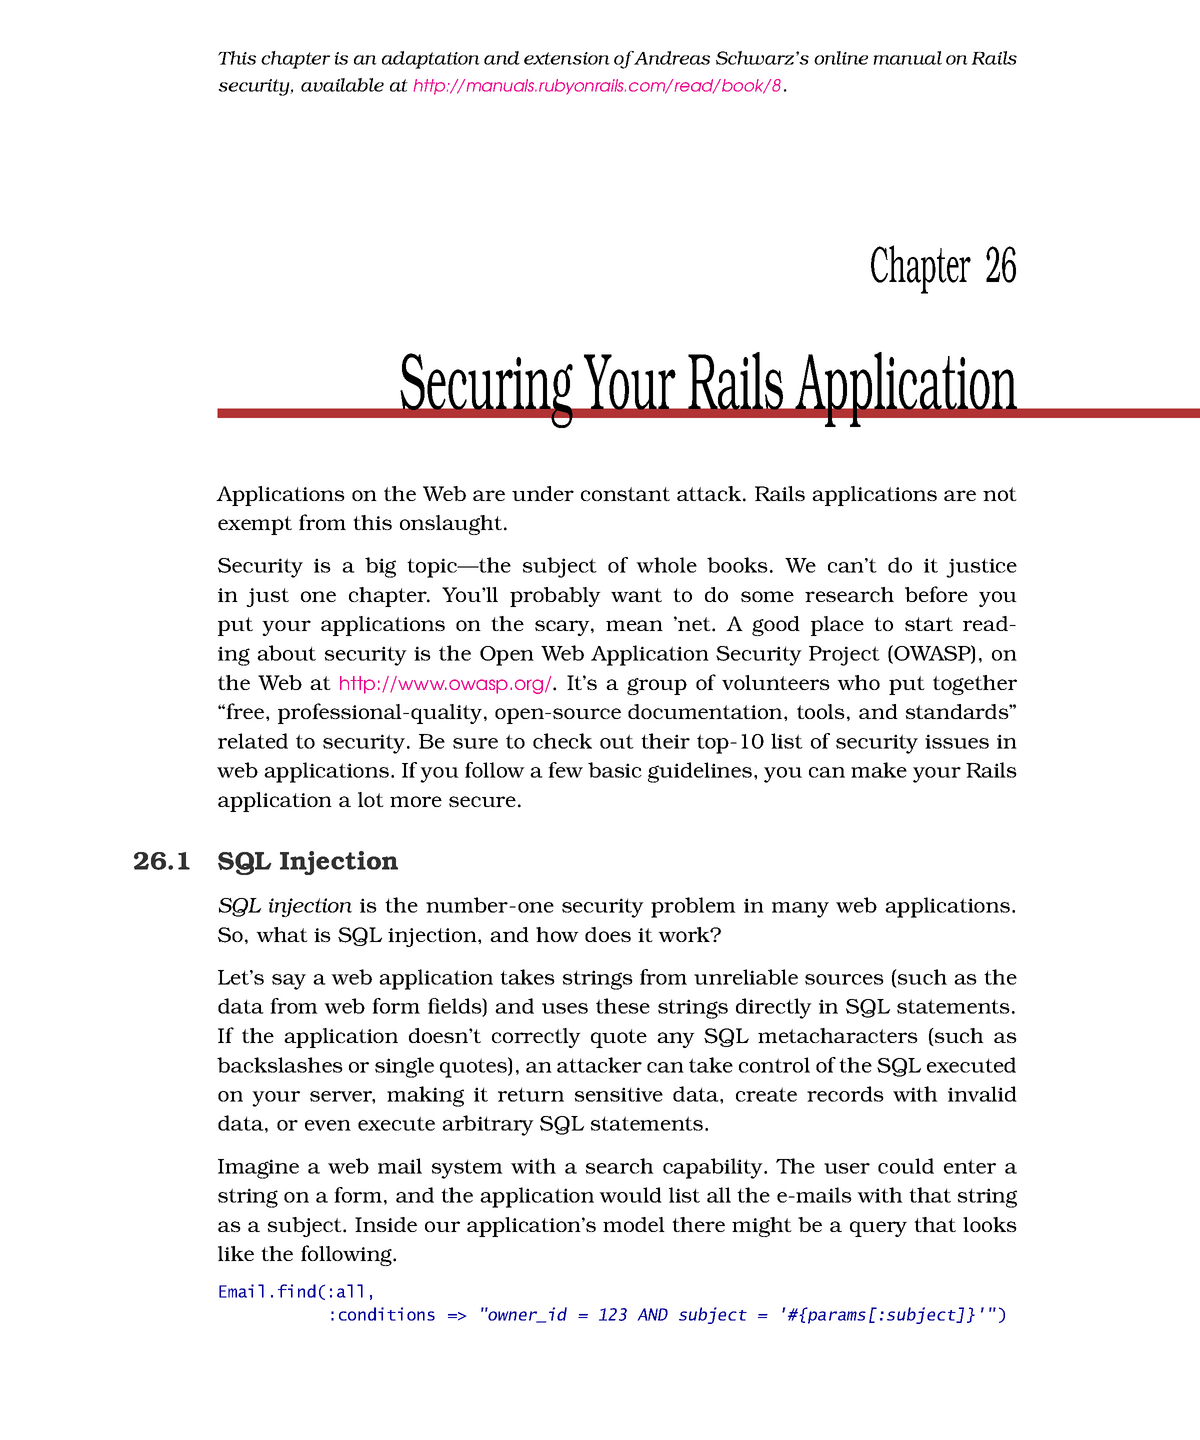 Chapter 26 - Securing Your Rails Application - EDA397: Agile